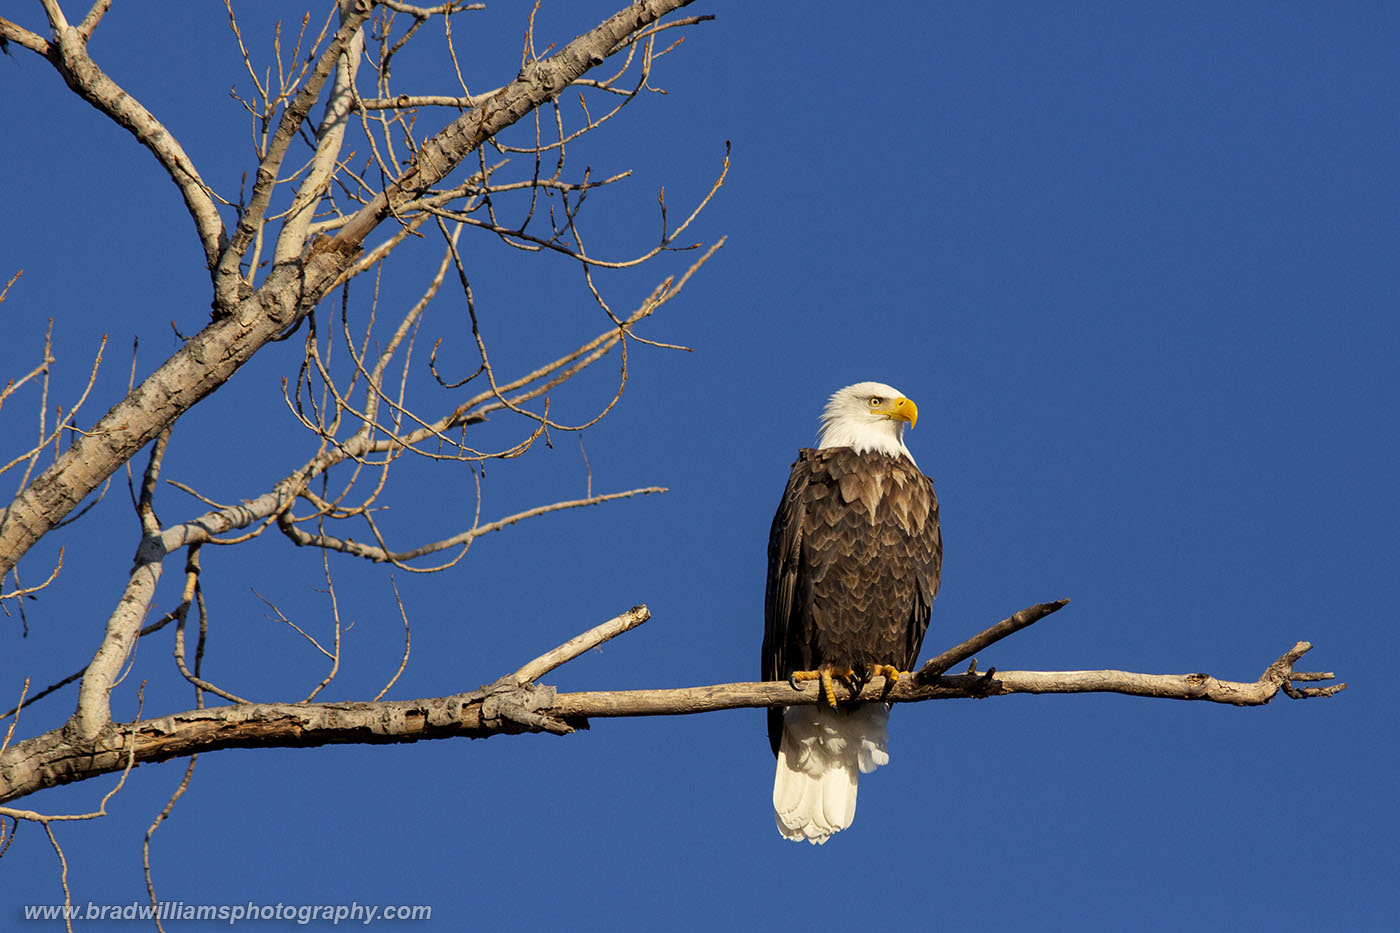 George Washington - A majestic bald eagle sits high in a cottonwood tree on a beautiful late winter afternoon.